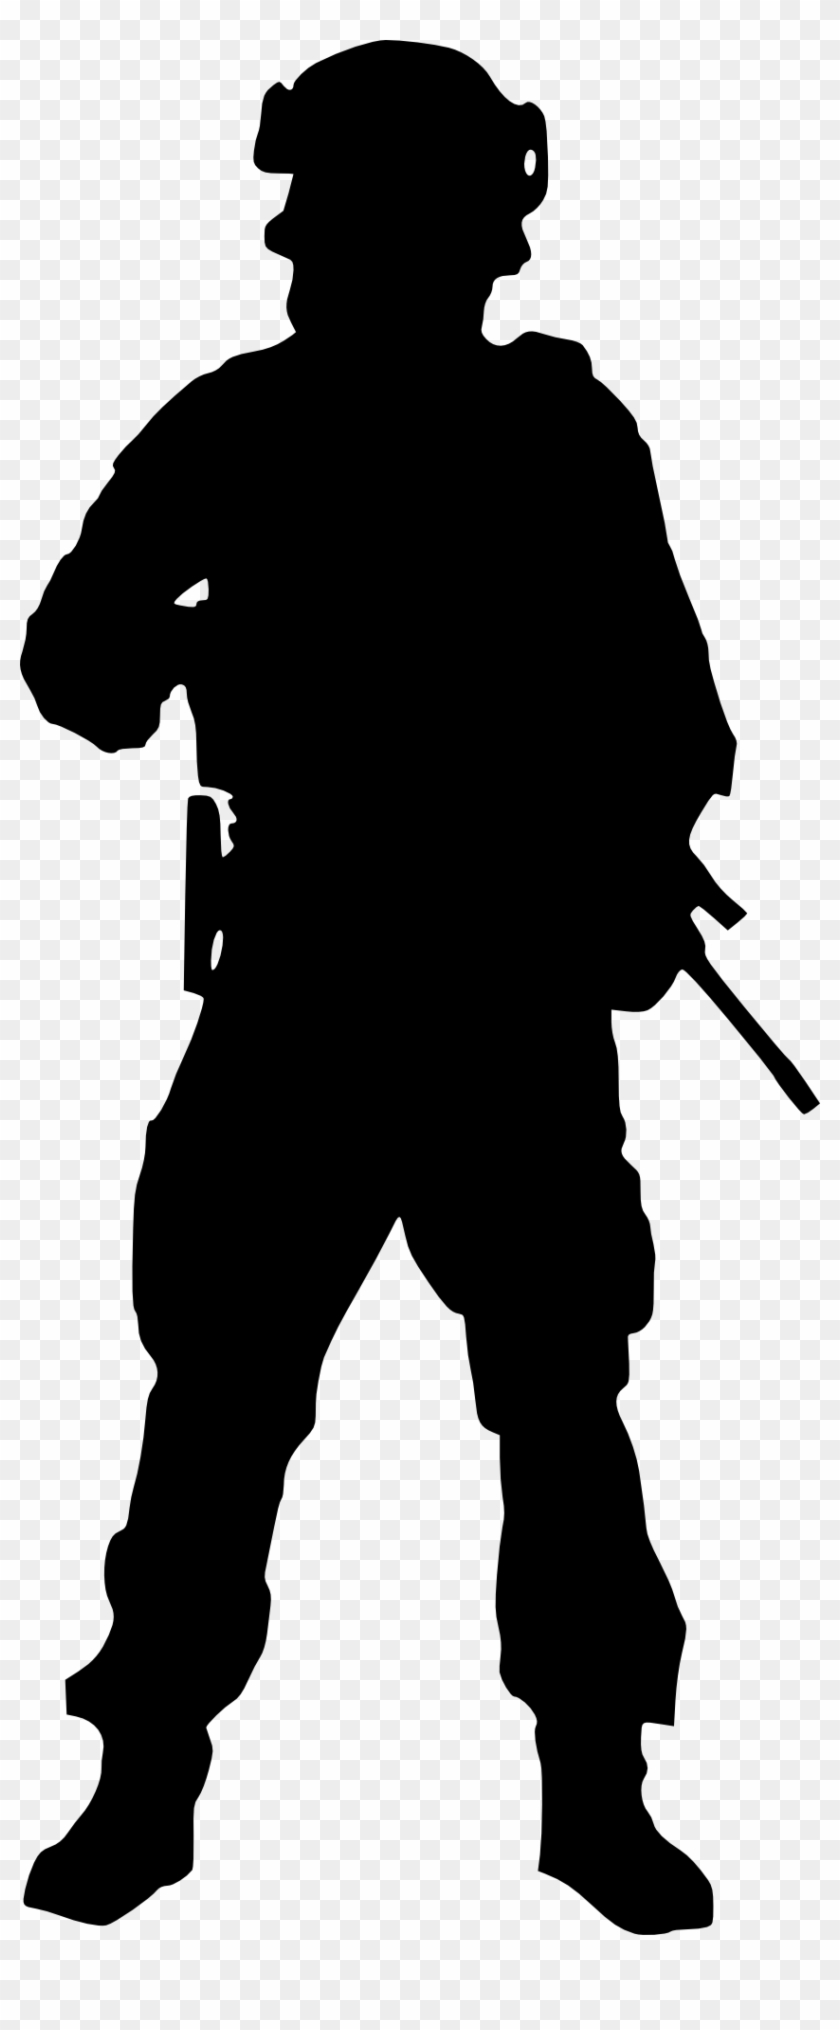 10 soldier silhouette soldier silhouette free transparent png rh clipartmax com Soldier Saluting Silhouette Soldier Saluting Silhouette